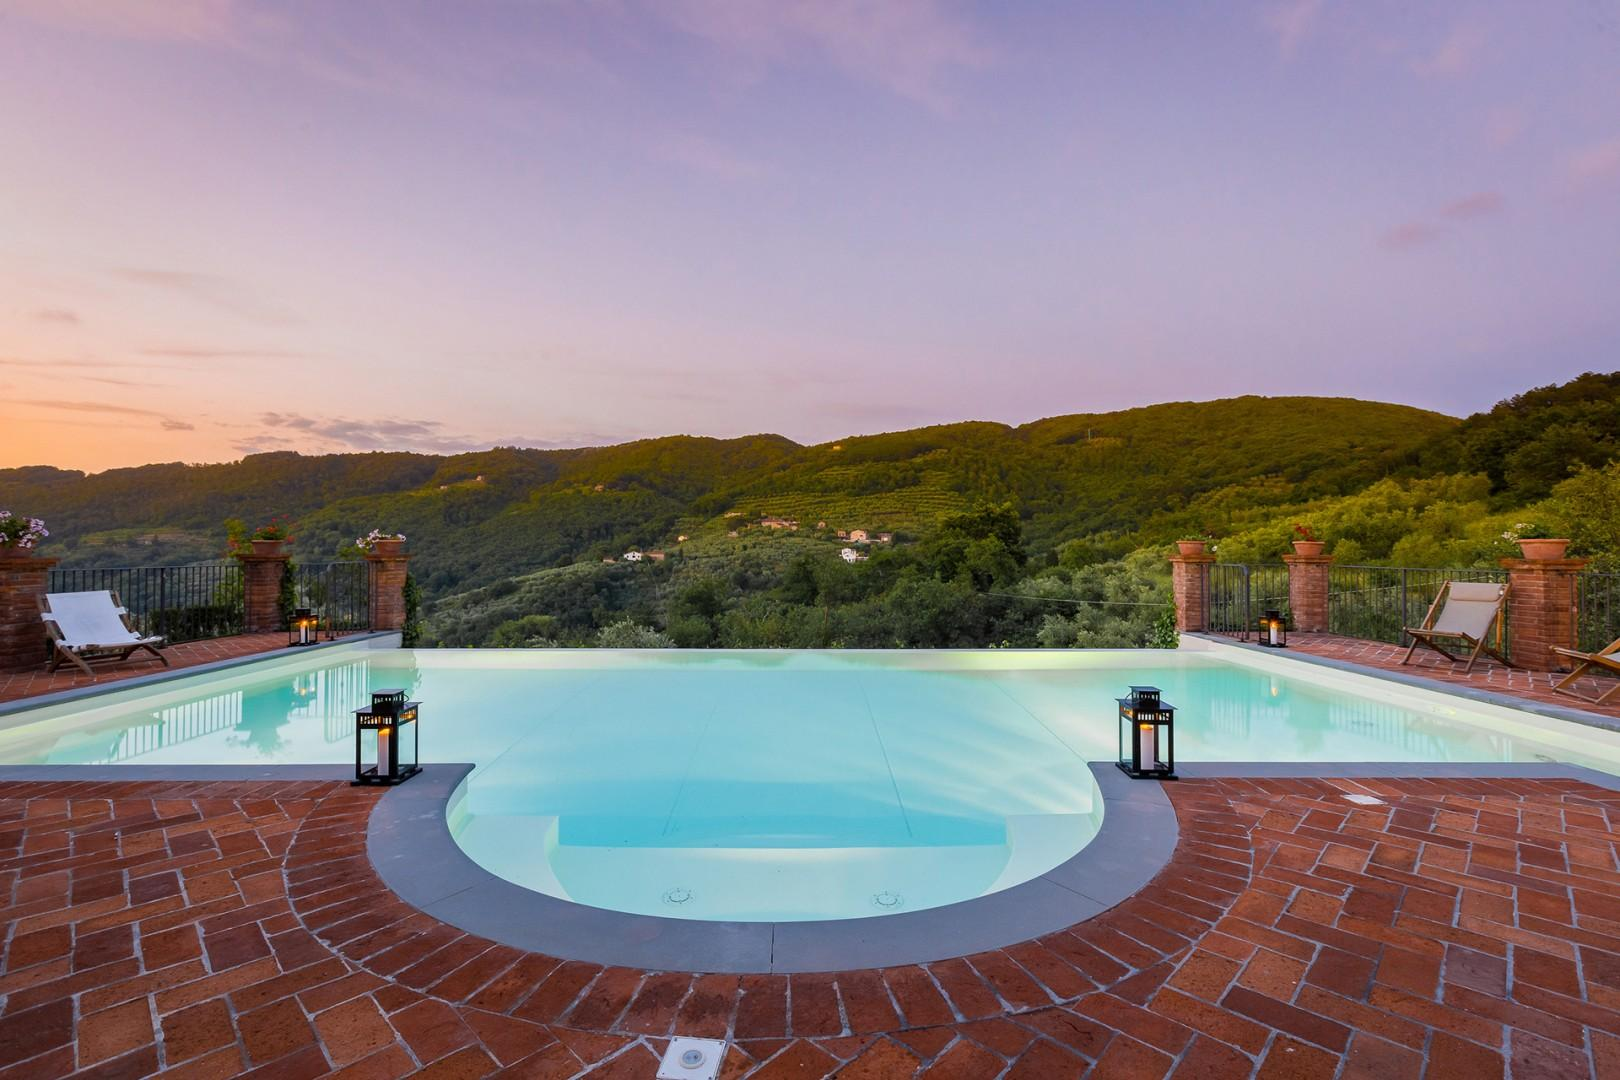 Infinity pool view of Tuscan hills.